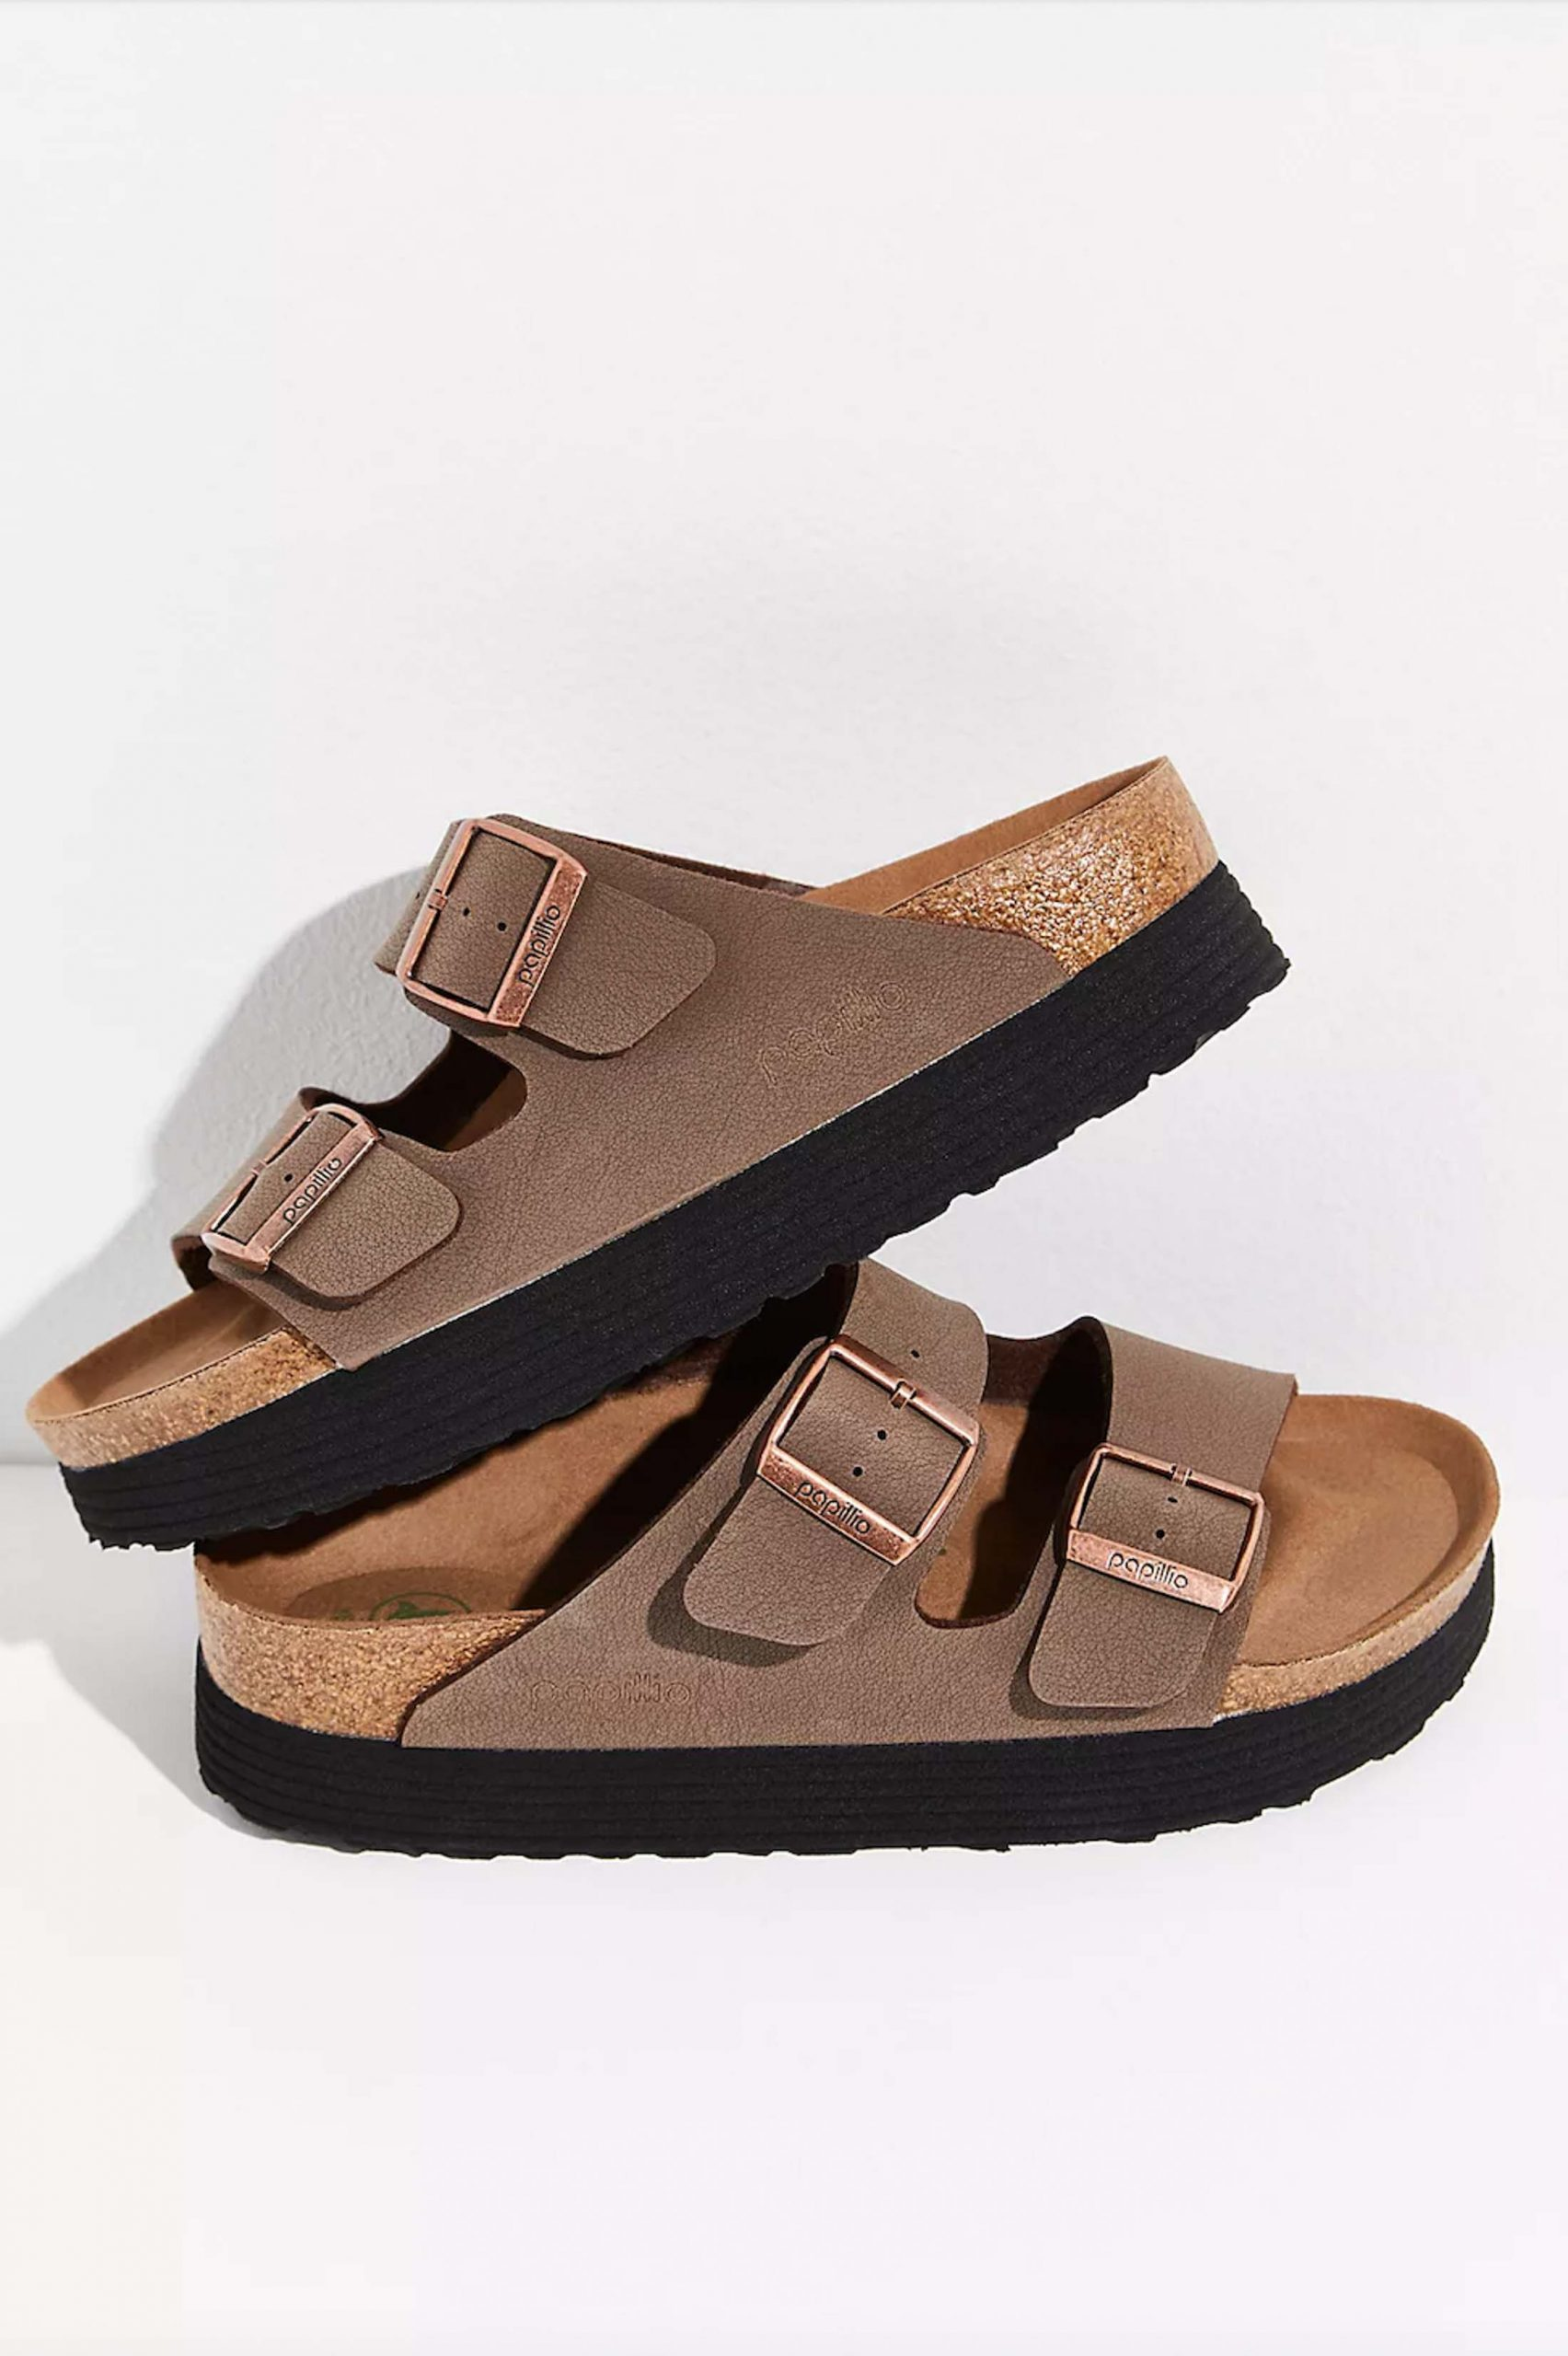 Last but certainly not least are the Birkenstock flatforms. Birks are a staple in my wardrobe, and I would love to add an extra pair that gives me a little height boost!